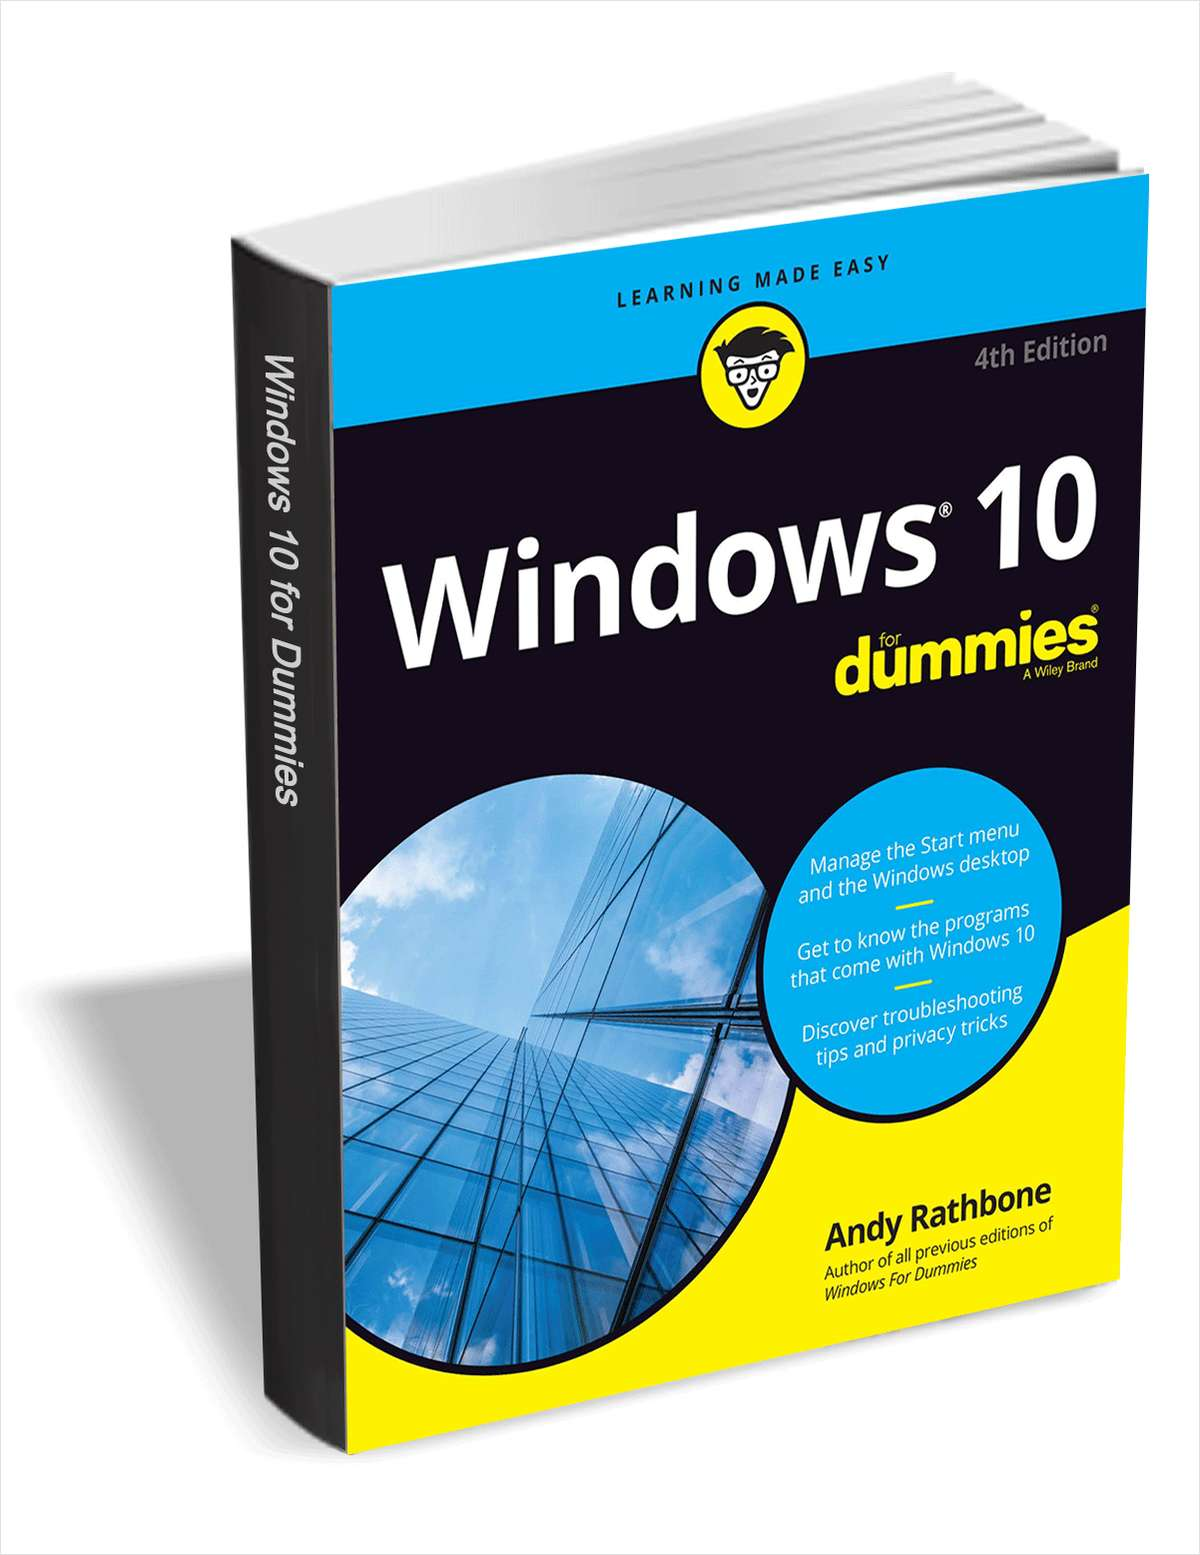 Windows 10 For Dummies, 4th Edition ($24.99 Value) FREE for a Limited Time